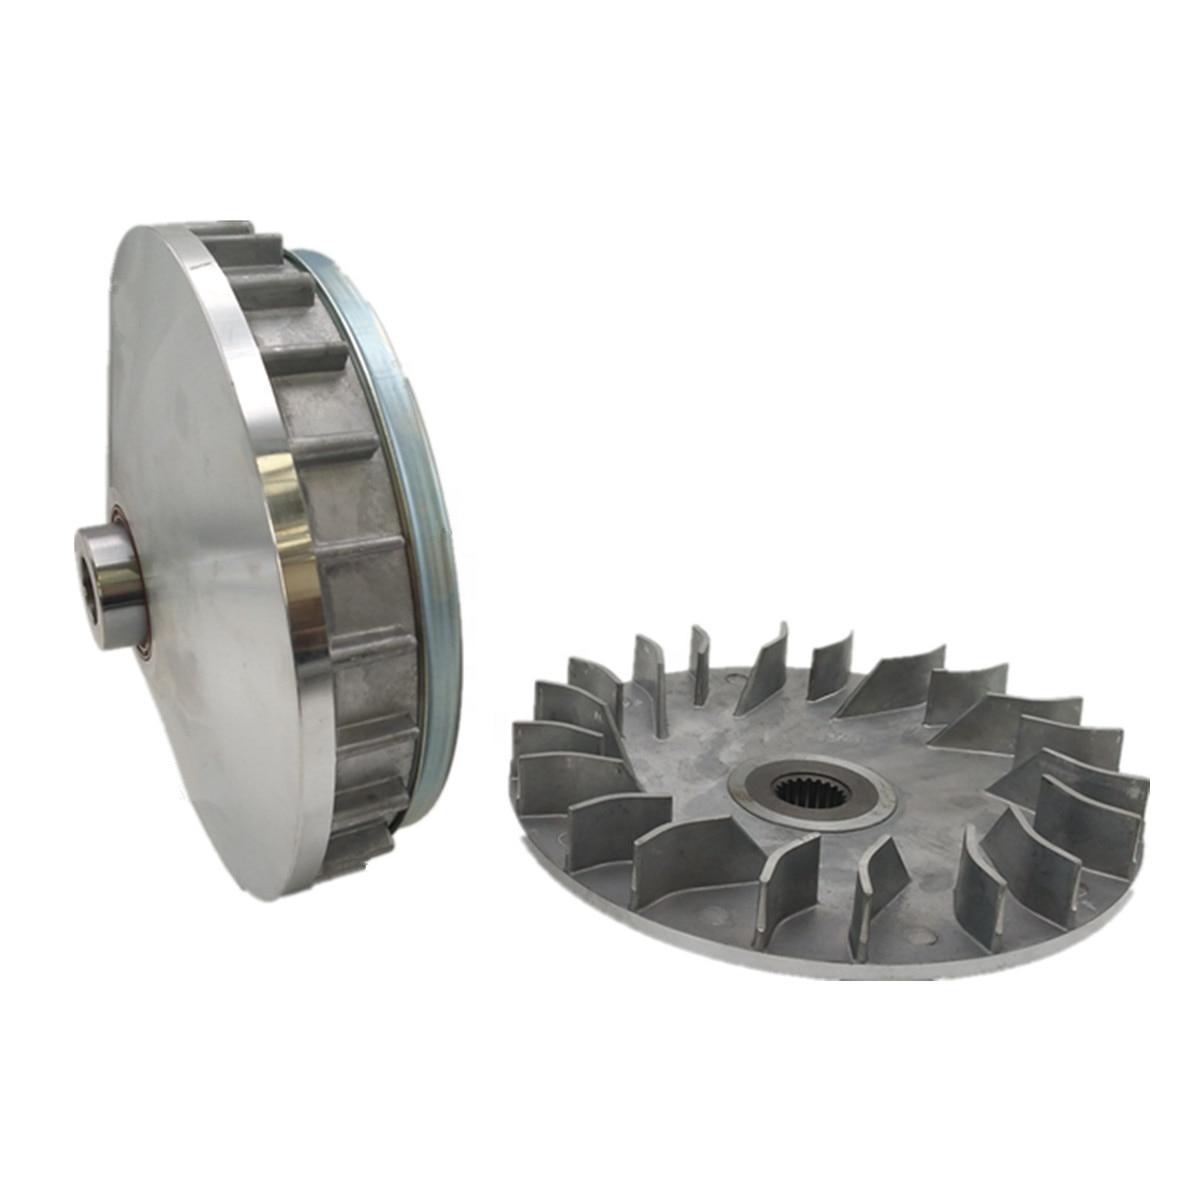 primary sheave assy fit for Grizzly 660 5KM-17620-00-00 5KM-17611-00-00 enlarge